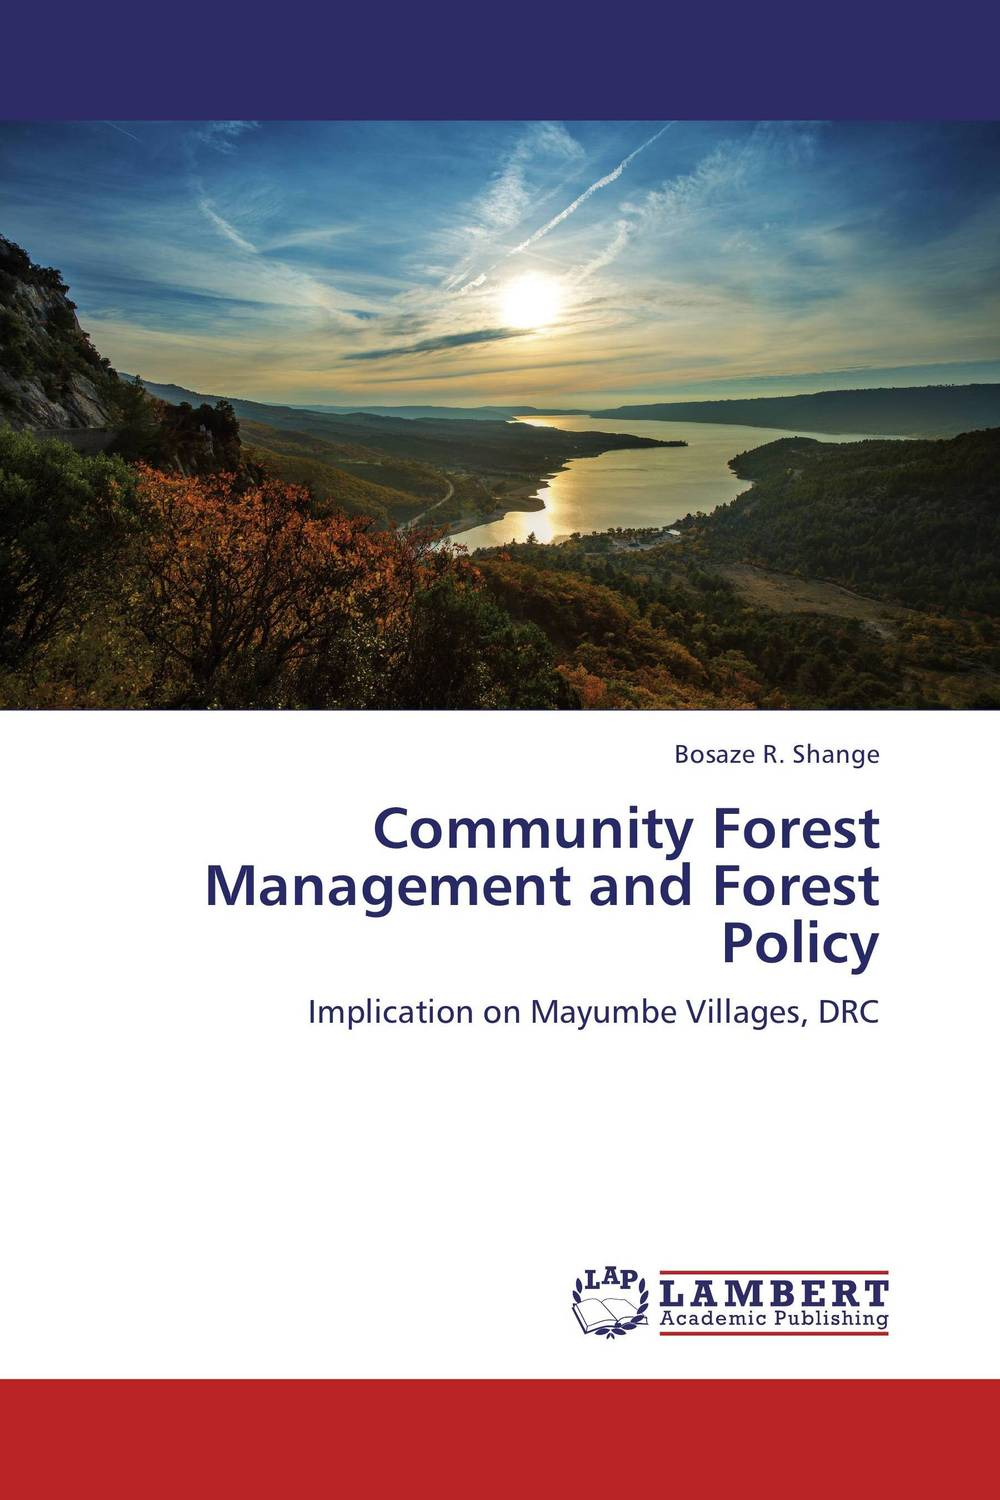 Community Forest Management and Forest Policy conflicts in forest resources usage and management